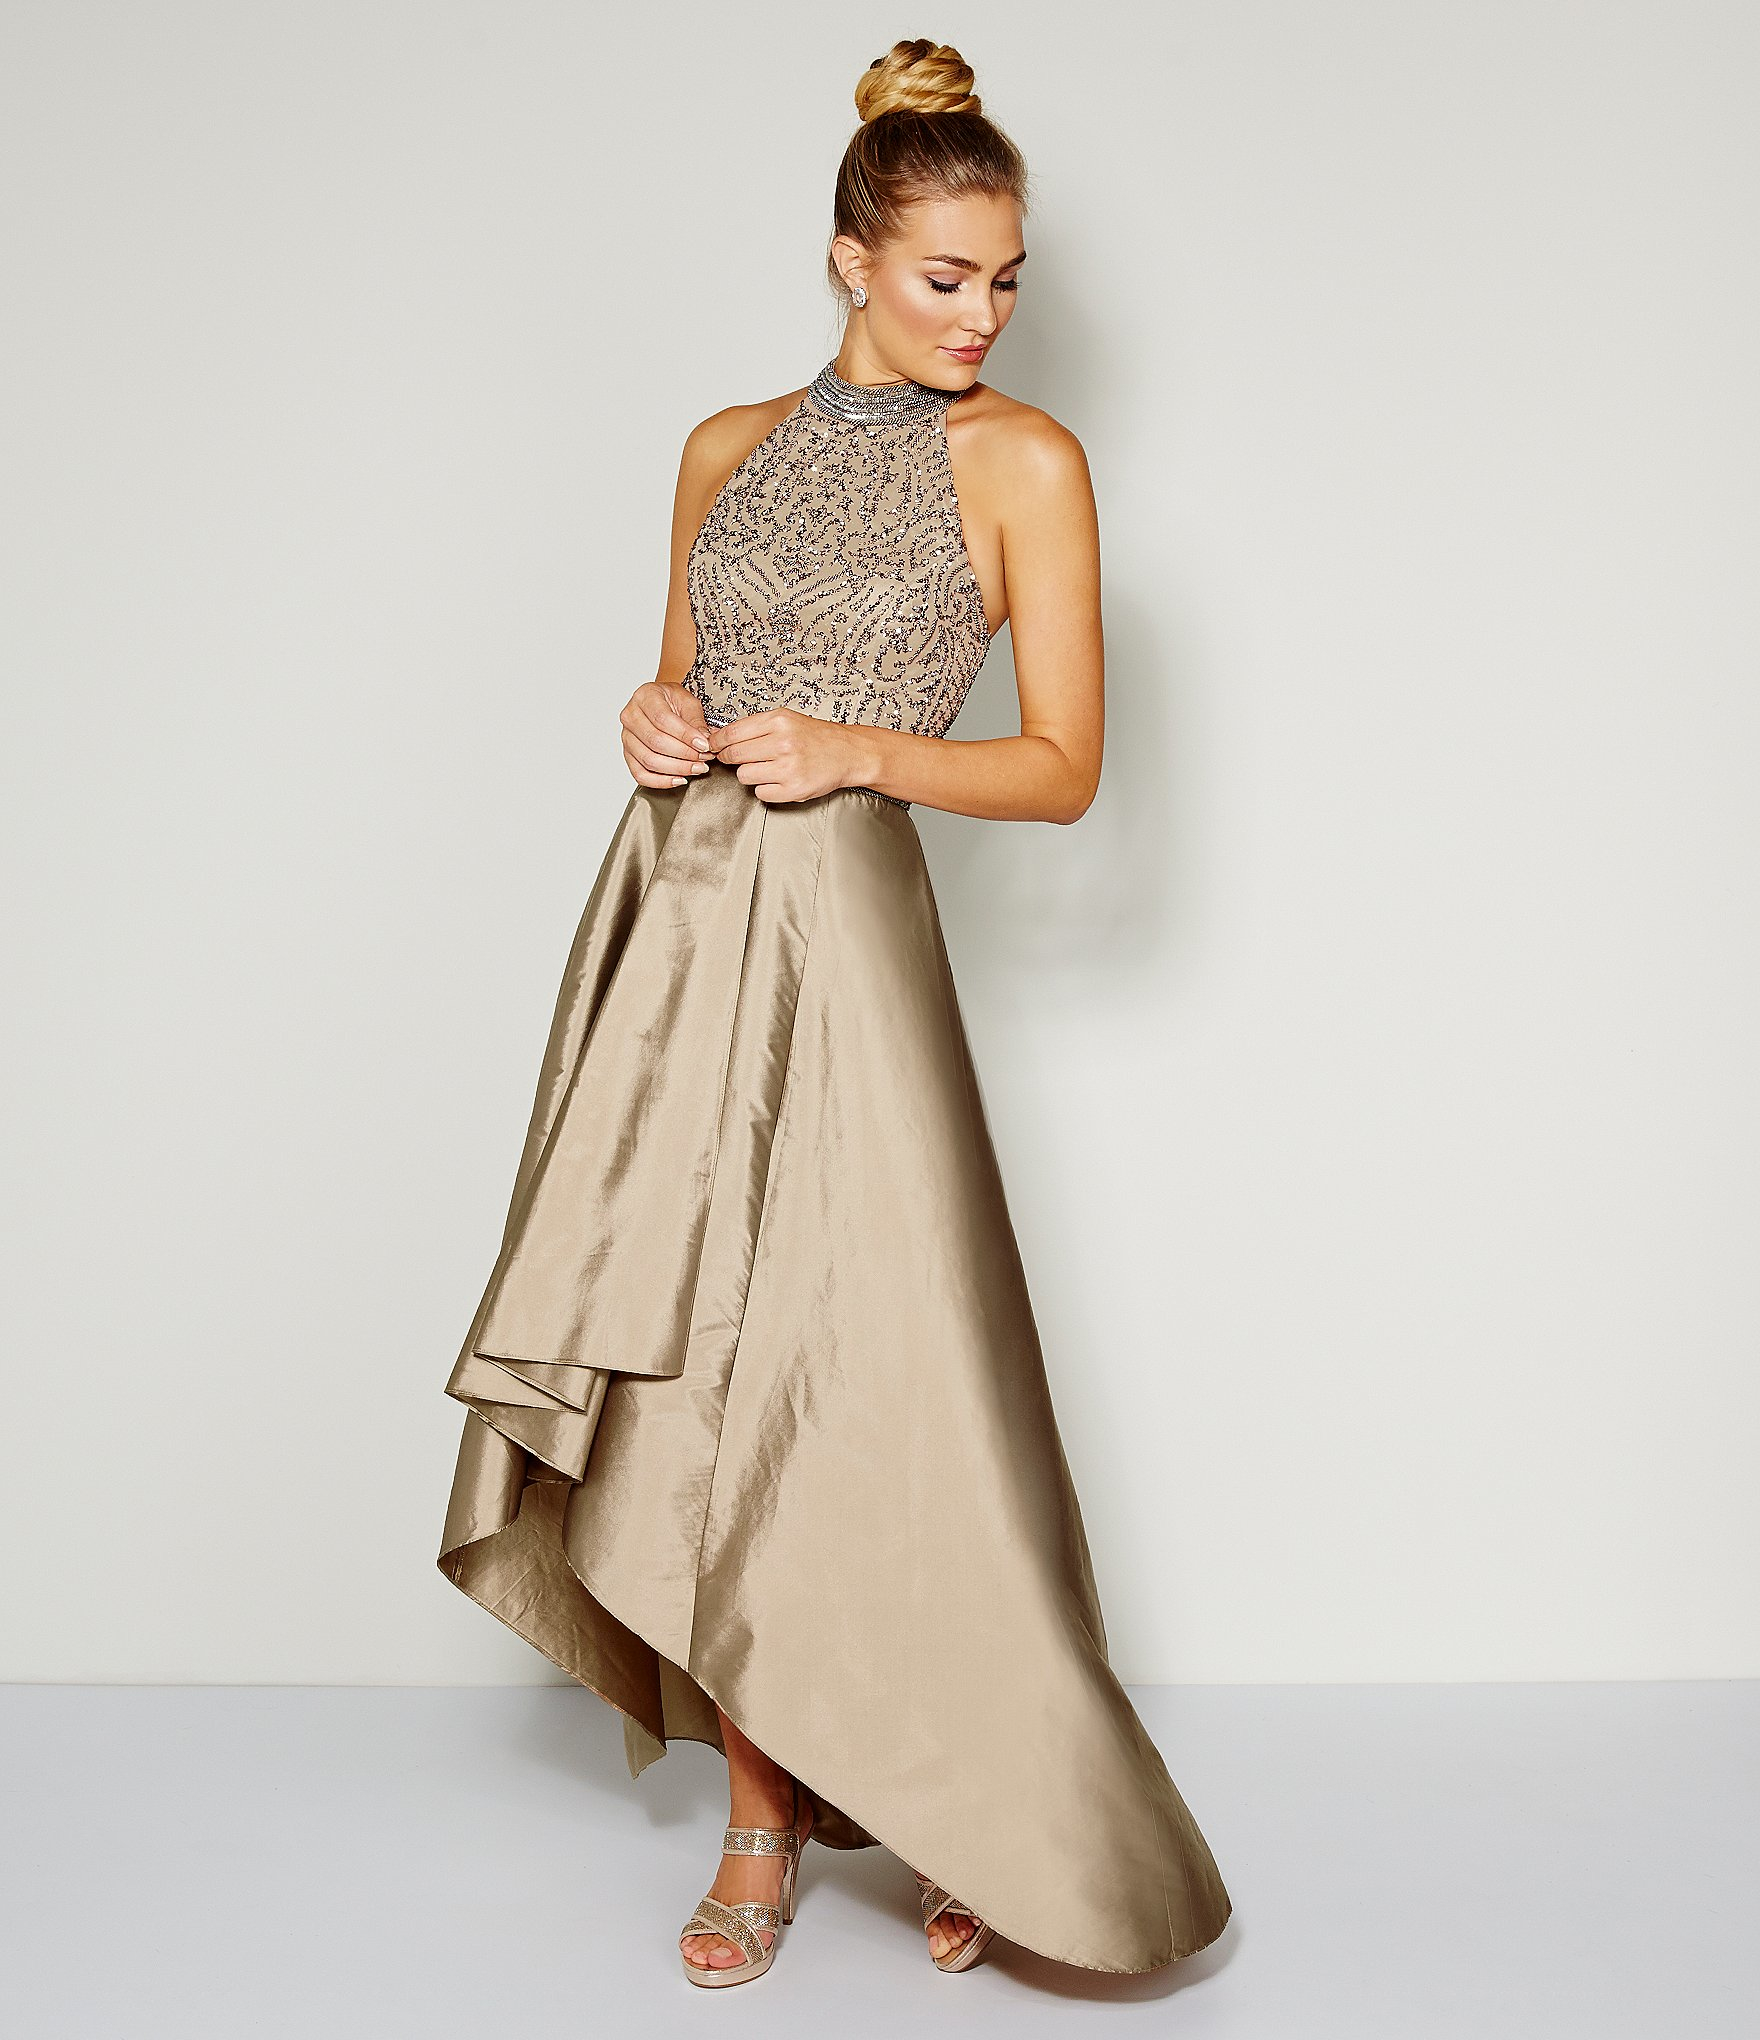 75fc1244513a2 Lyst - Adrianna Papell Beaded Halter Hi-low Gown in Metallic